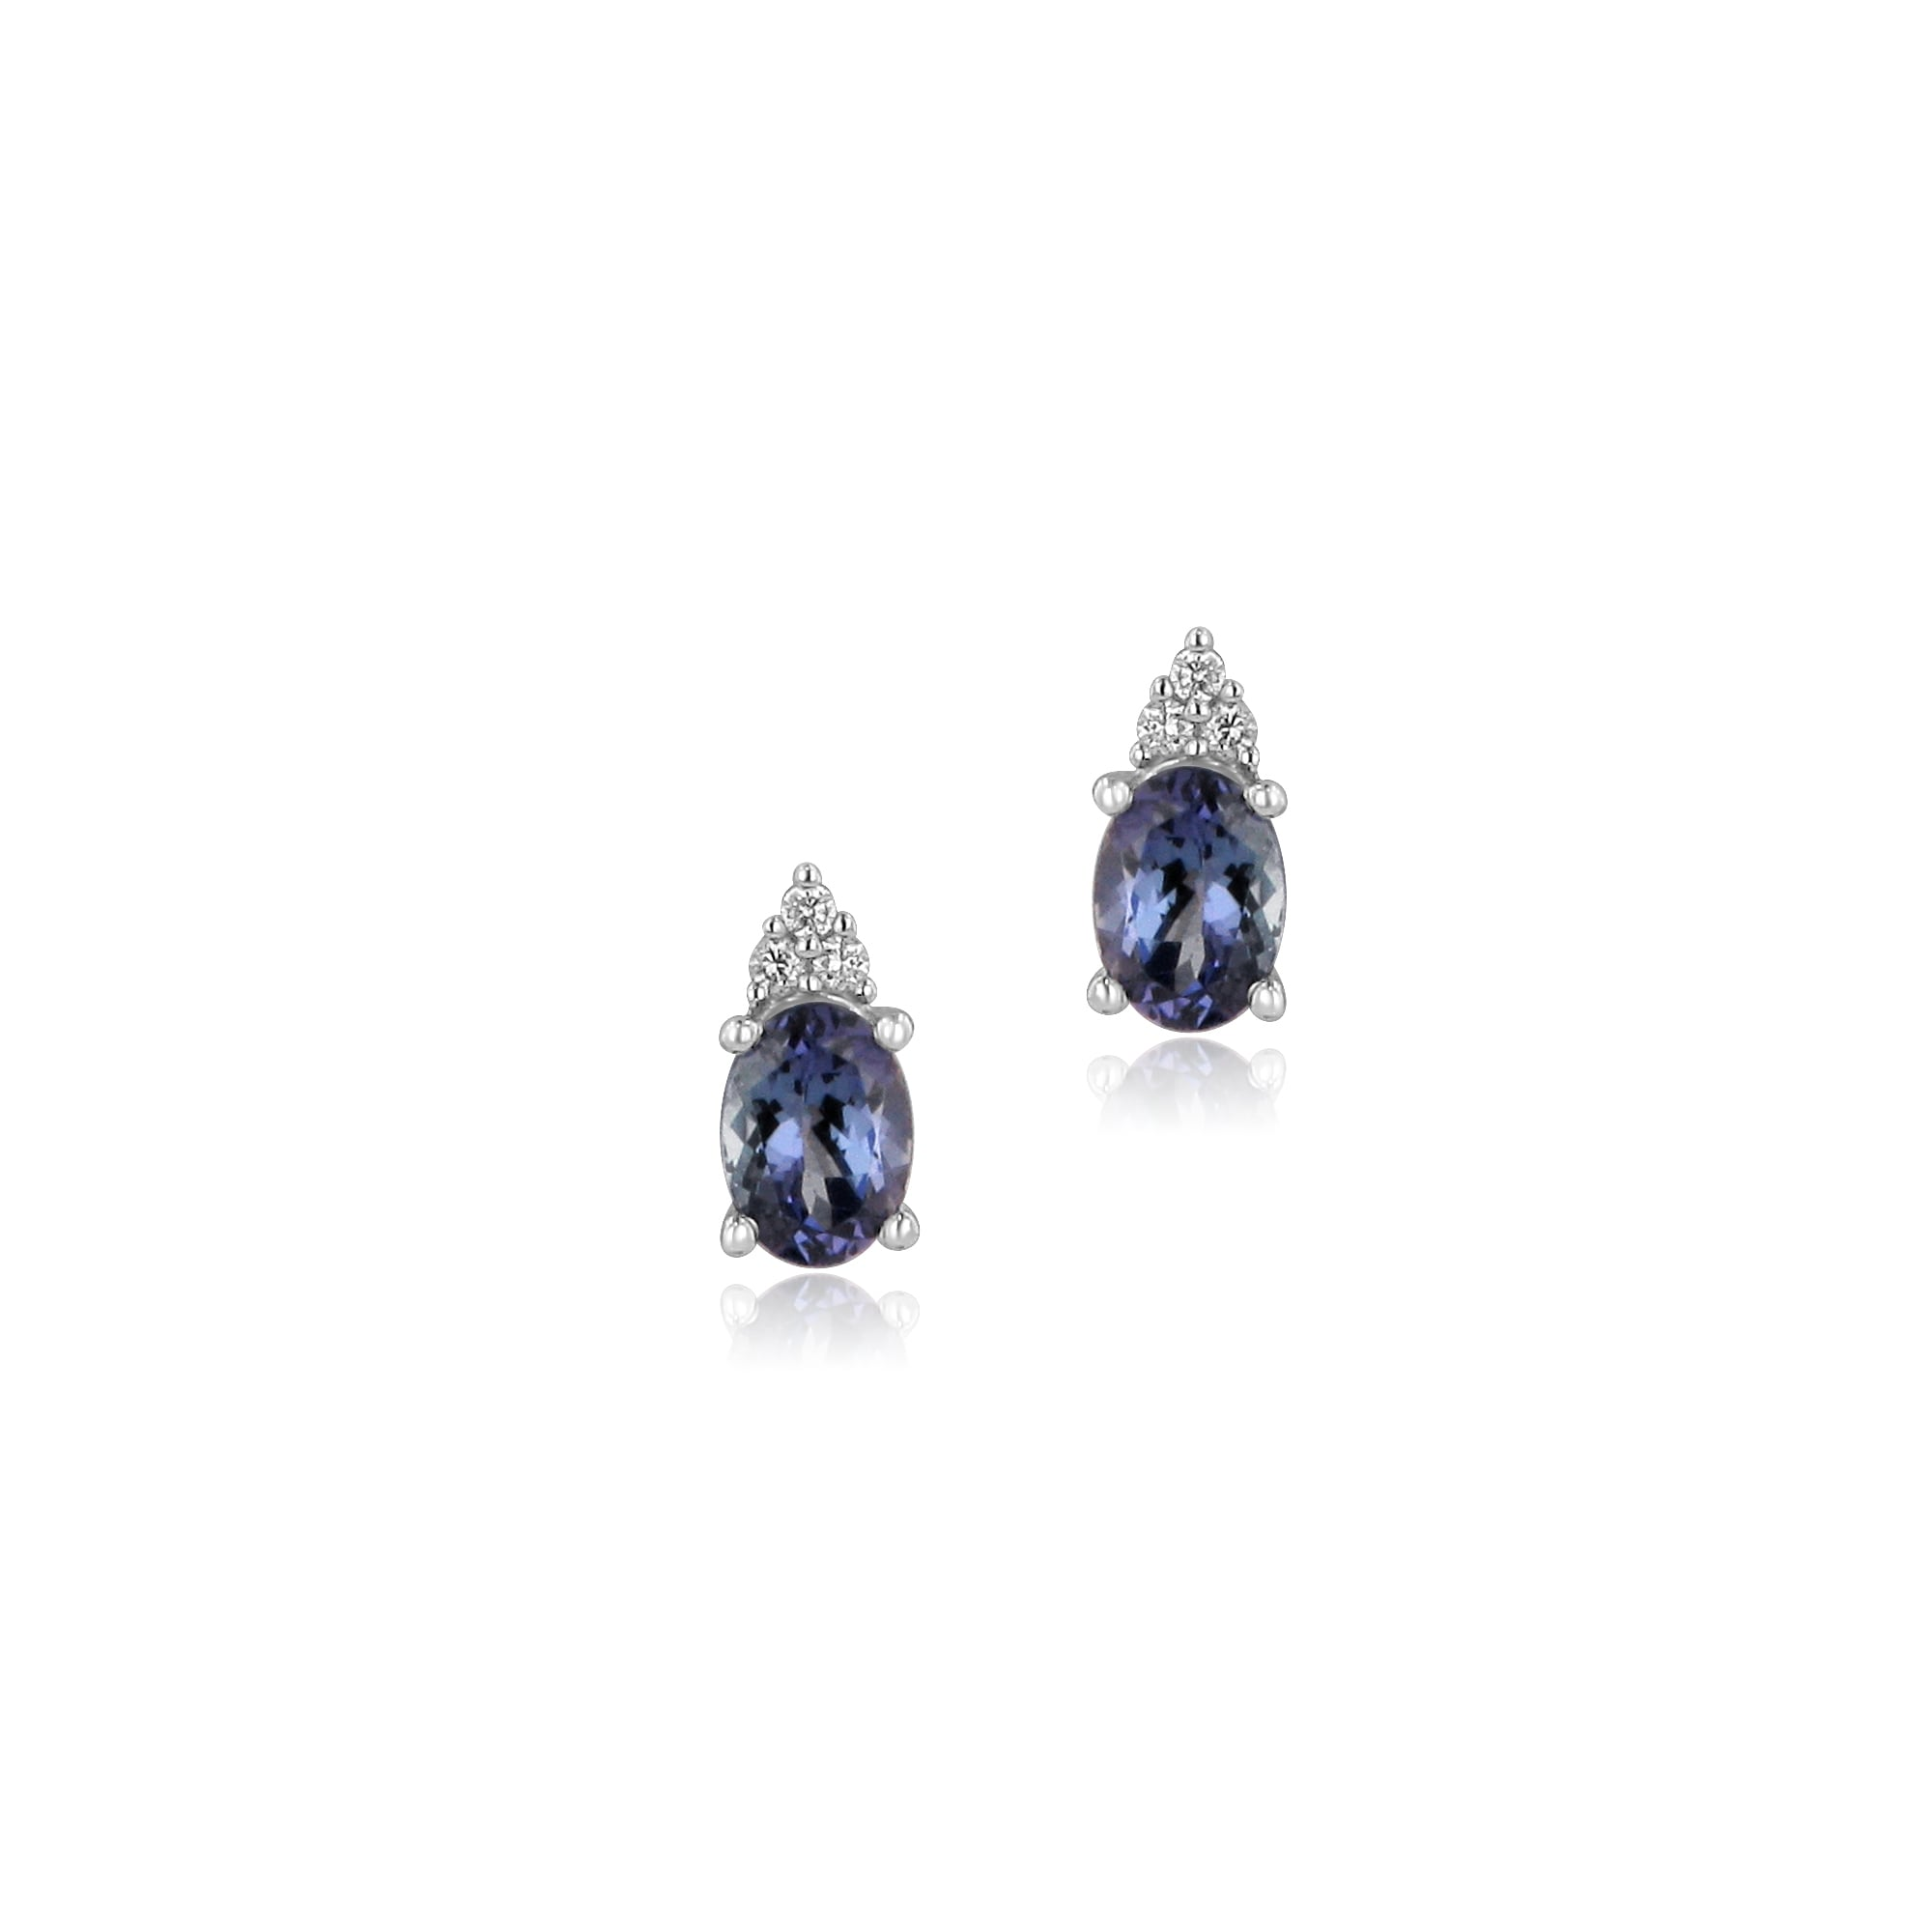 karimi ear trillion editdec earrings shahla gold products birthstone tanzanite with jacket img